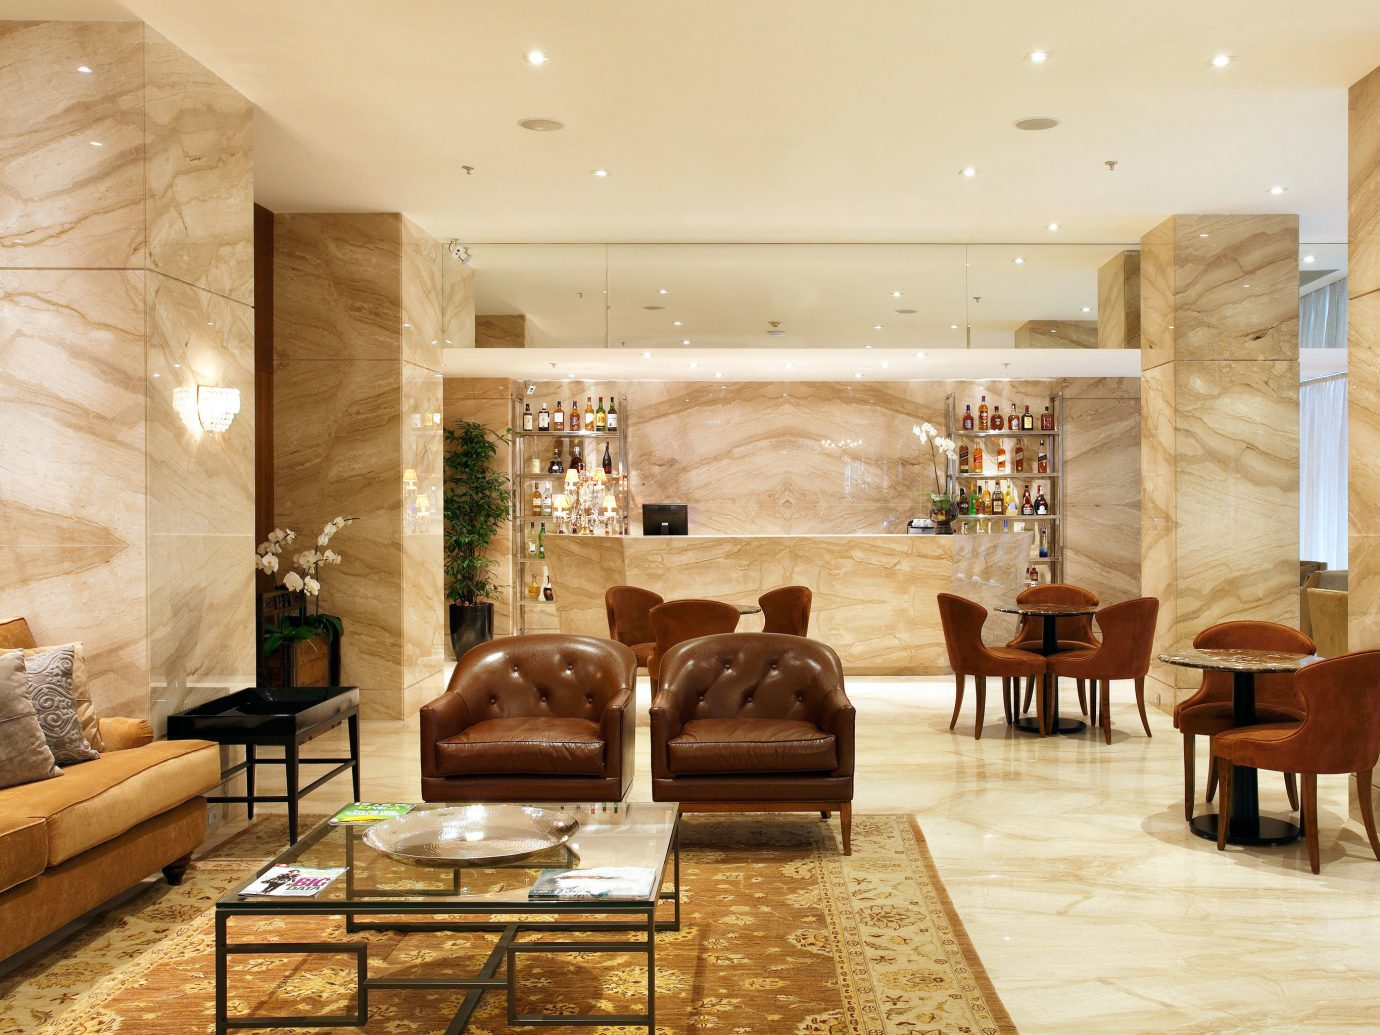 Entertainment Hotels Lobby Nightlife Ocean Romance Waterfront indoor floor table wall room property living room Living estate interior design dining room ceiling furniture Design several